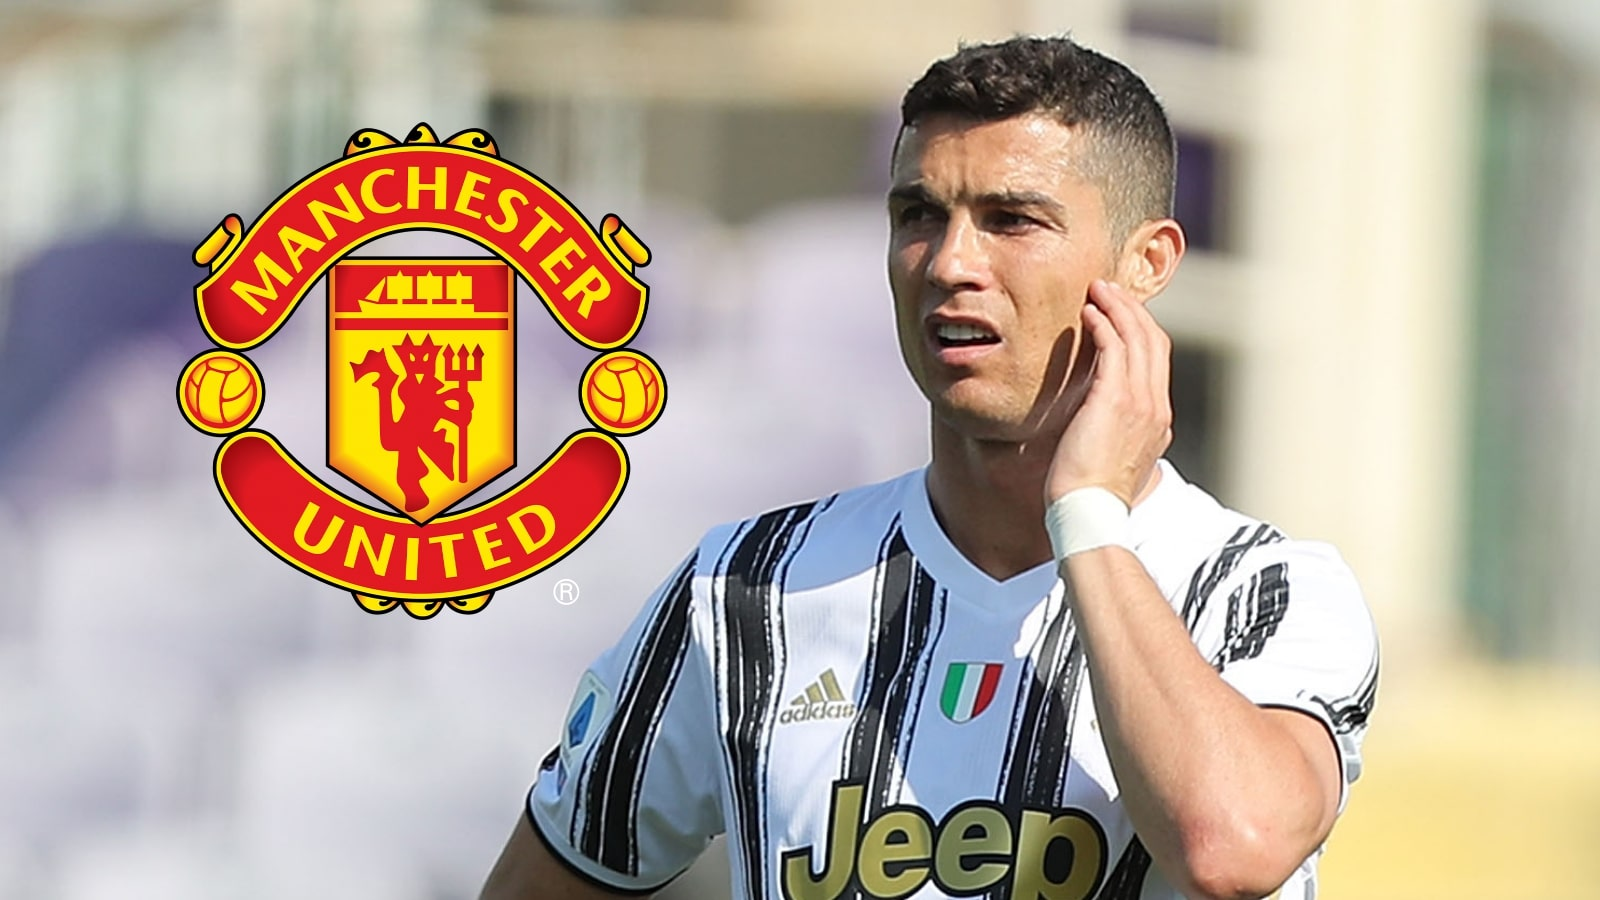 Cristiano Ronaldo returns home club Manchester United after 12 years